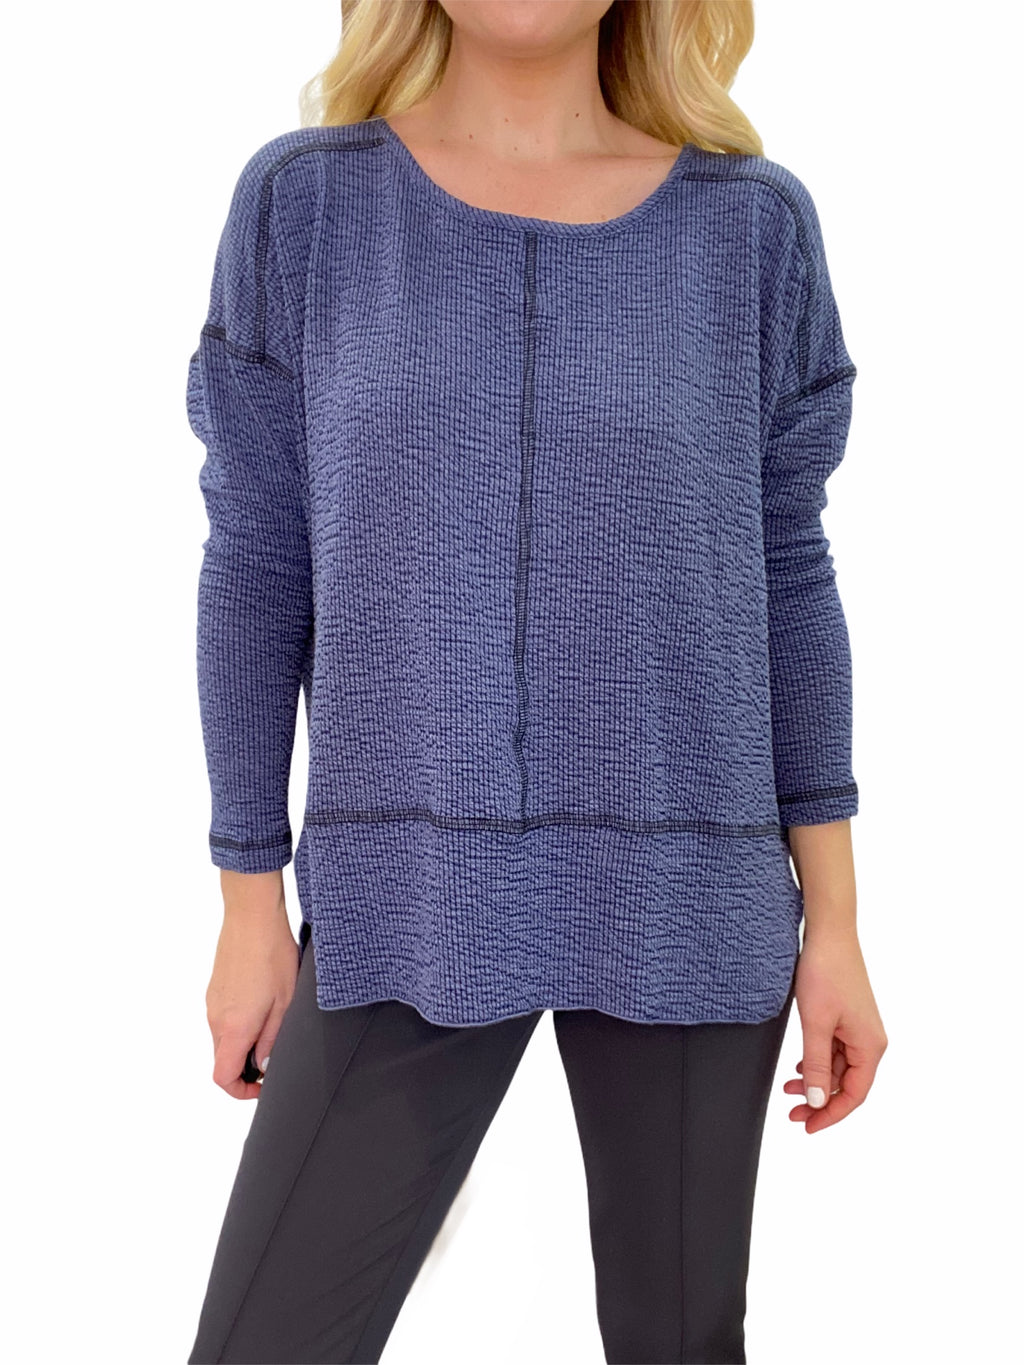 Knit Top with Contrast Stitch